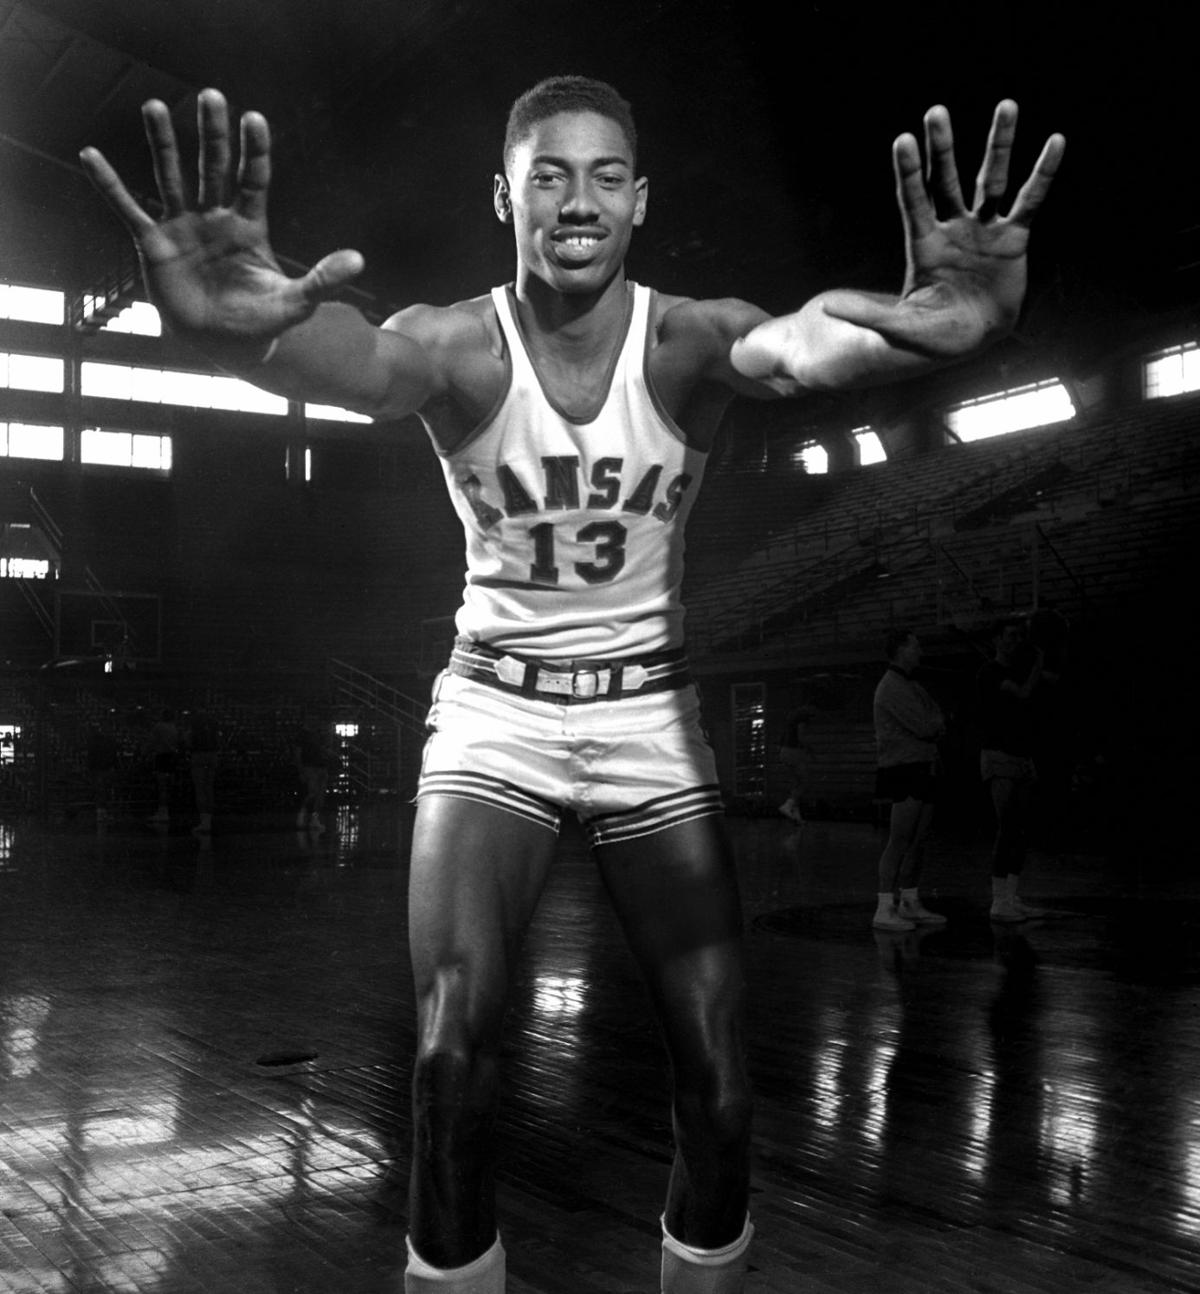 Before his prolific NBA career Wilt Chamberlain excelled at